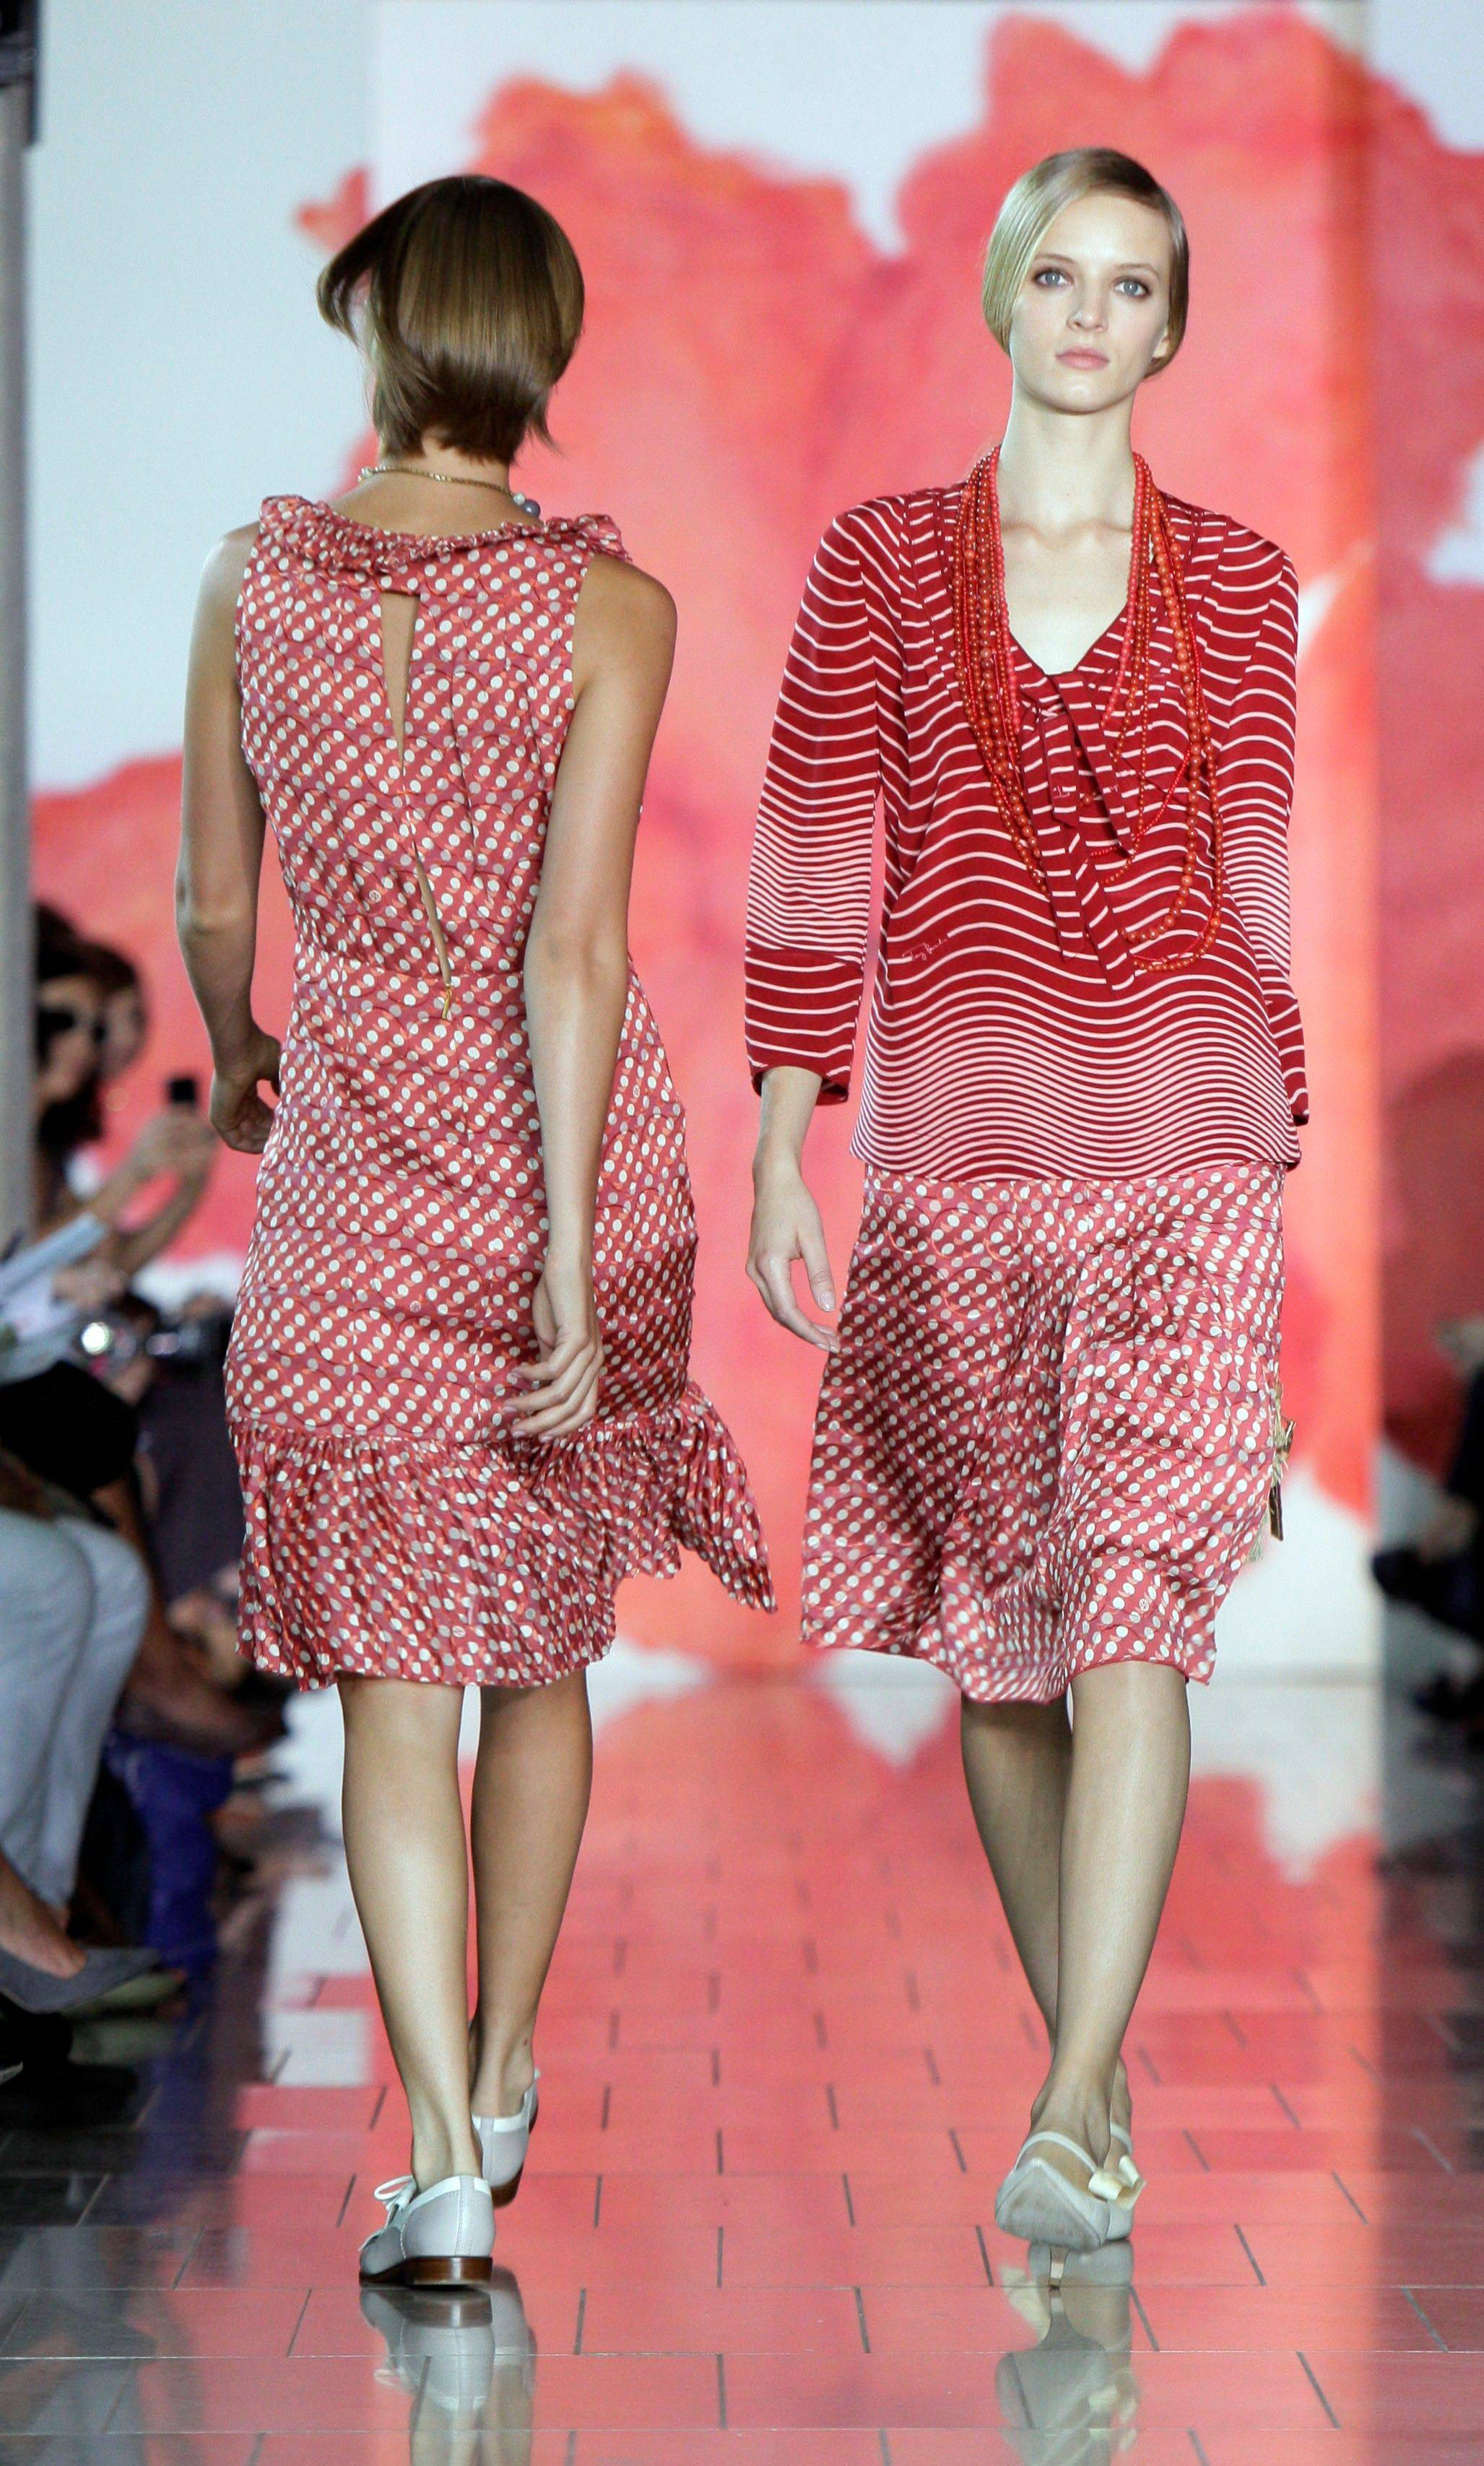 The spring 2012 collection of designer Tory Burch is modeled during Fashion Week in New York, Tuesday, Sept. 13, 2011.